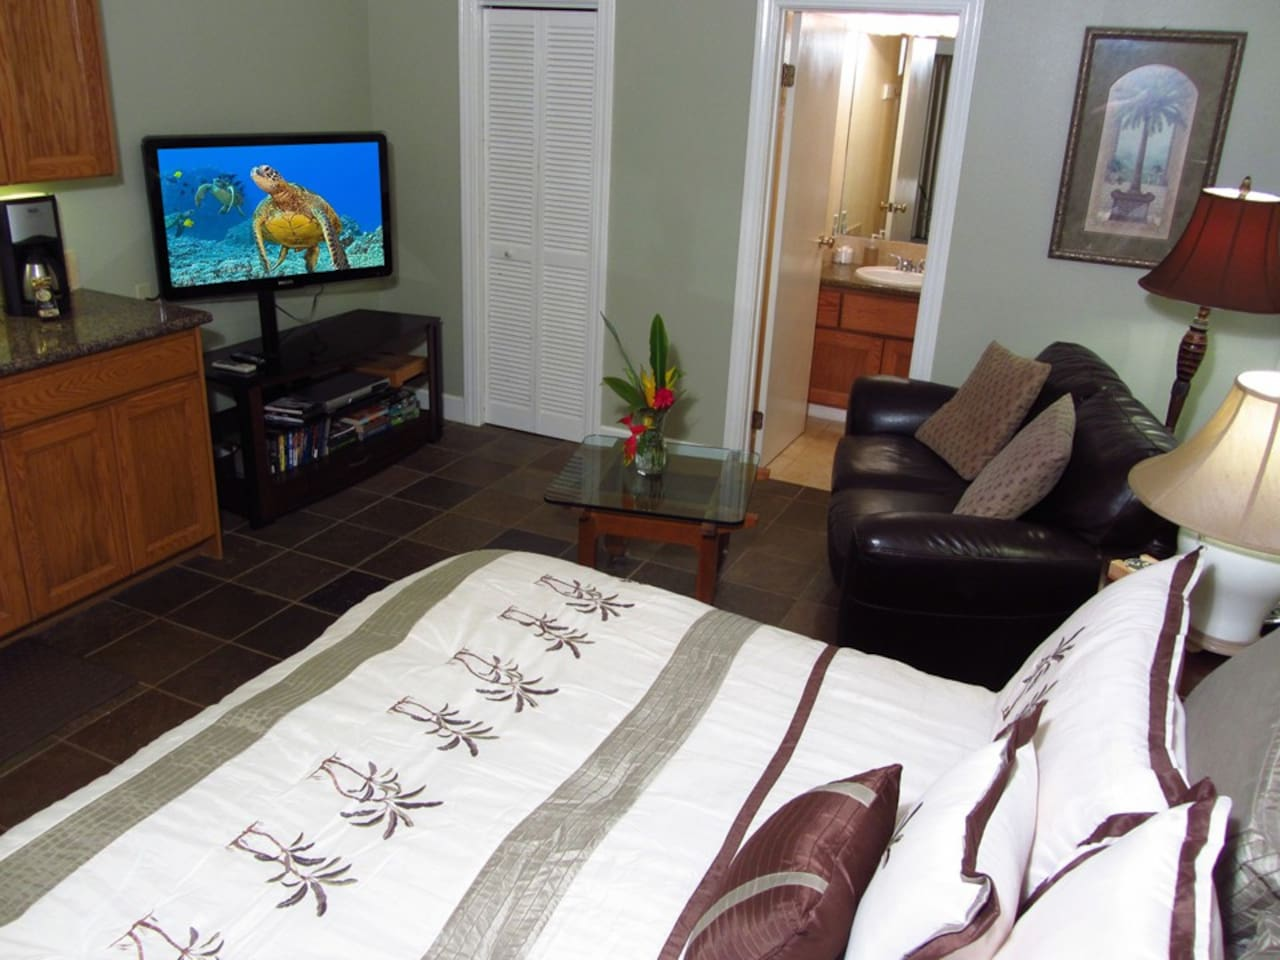 Beachcomber king bed with pillow top mattress and Egyptian cotton linens.  Large screen HDTV.